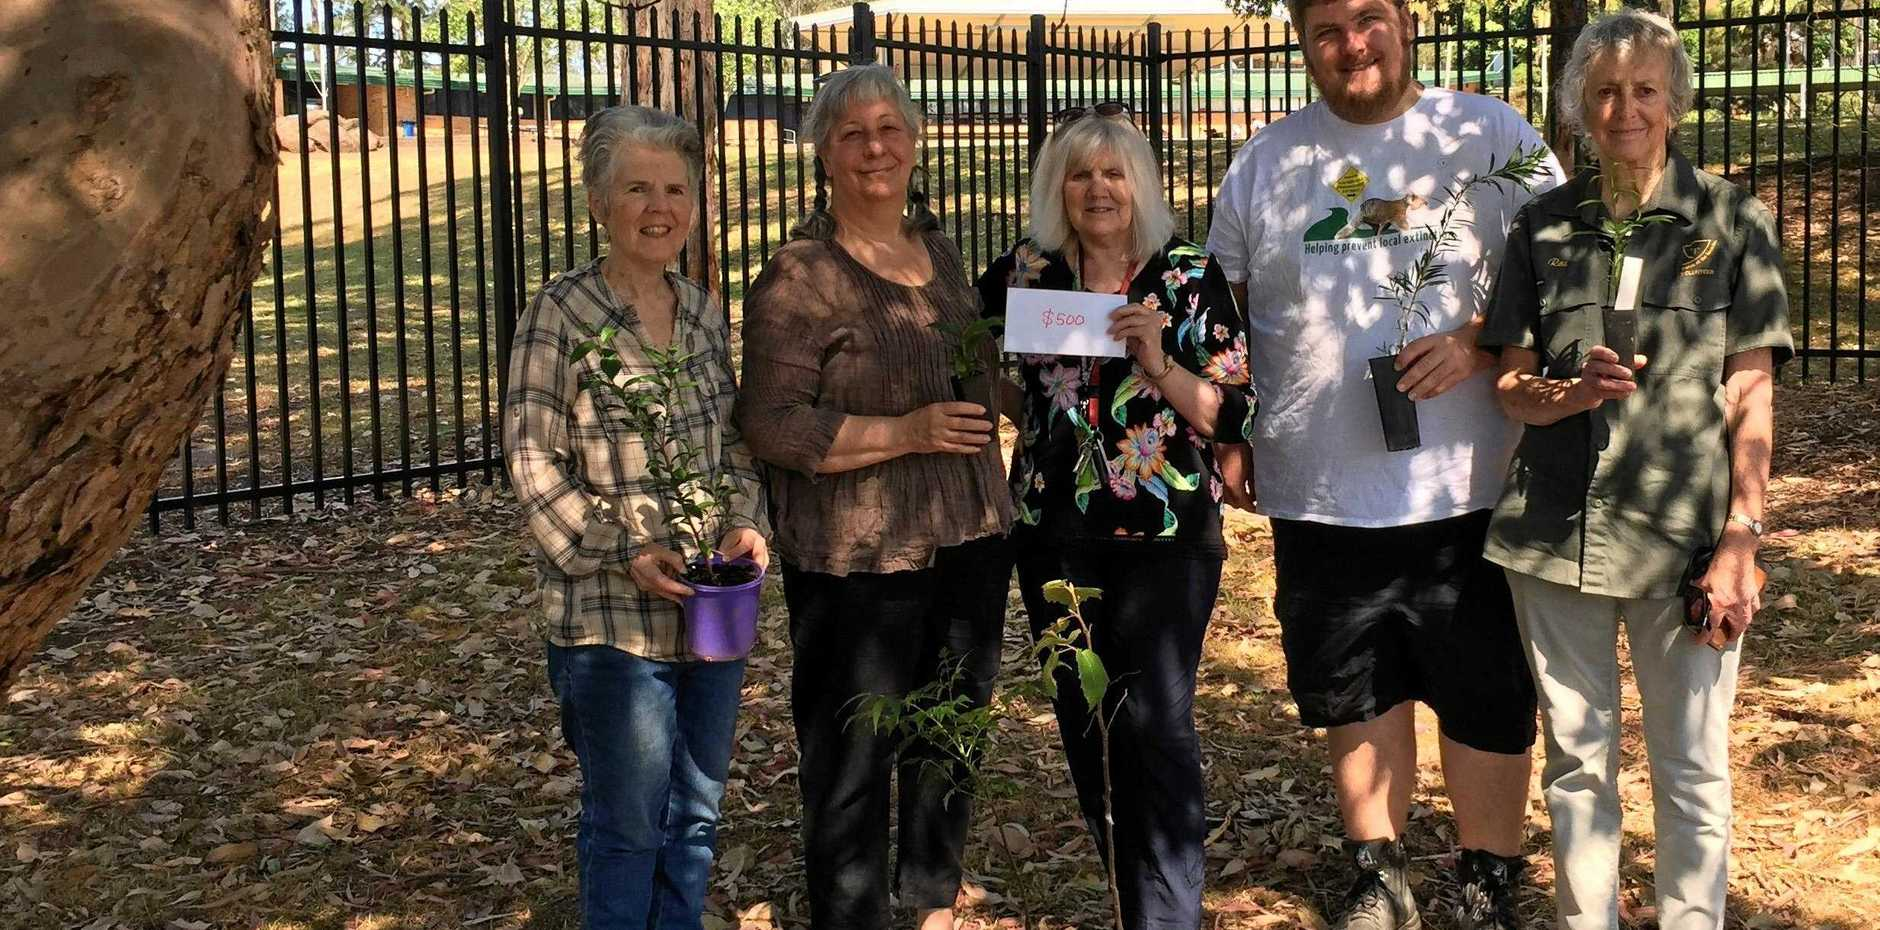 RICH PICKINGS: Friends of the Koalas Mark Wilson, Corena Wynd of Upper Tucki Tucki Creek Landcare and Dr Kristin Den Exter of Wilsons River Landcarers and Lismore Theatre Company members Elyse Knowles and Luke Kane meet to discuss just how to use the LTC's compensation money.